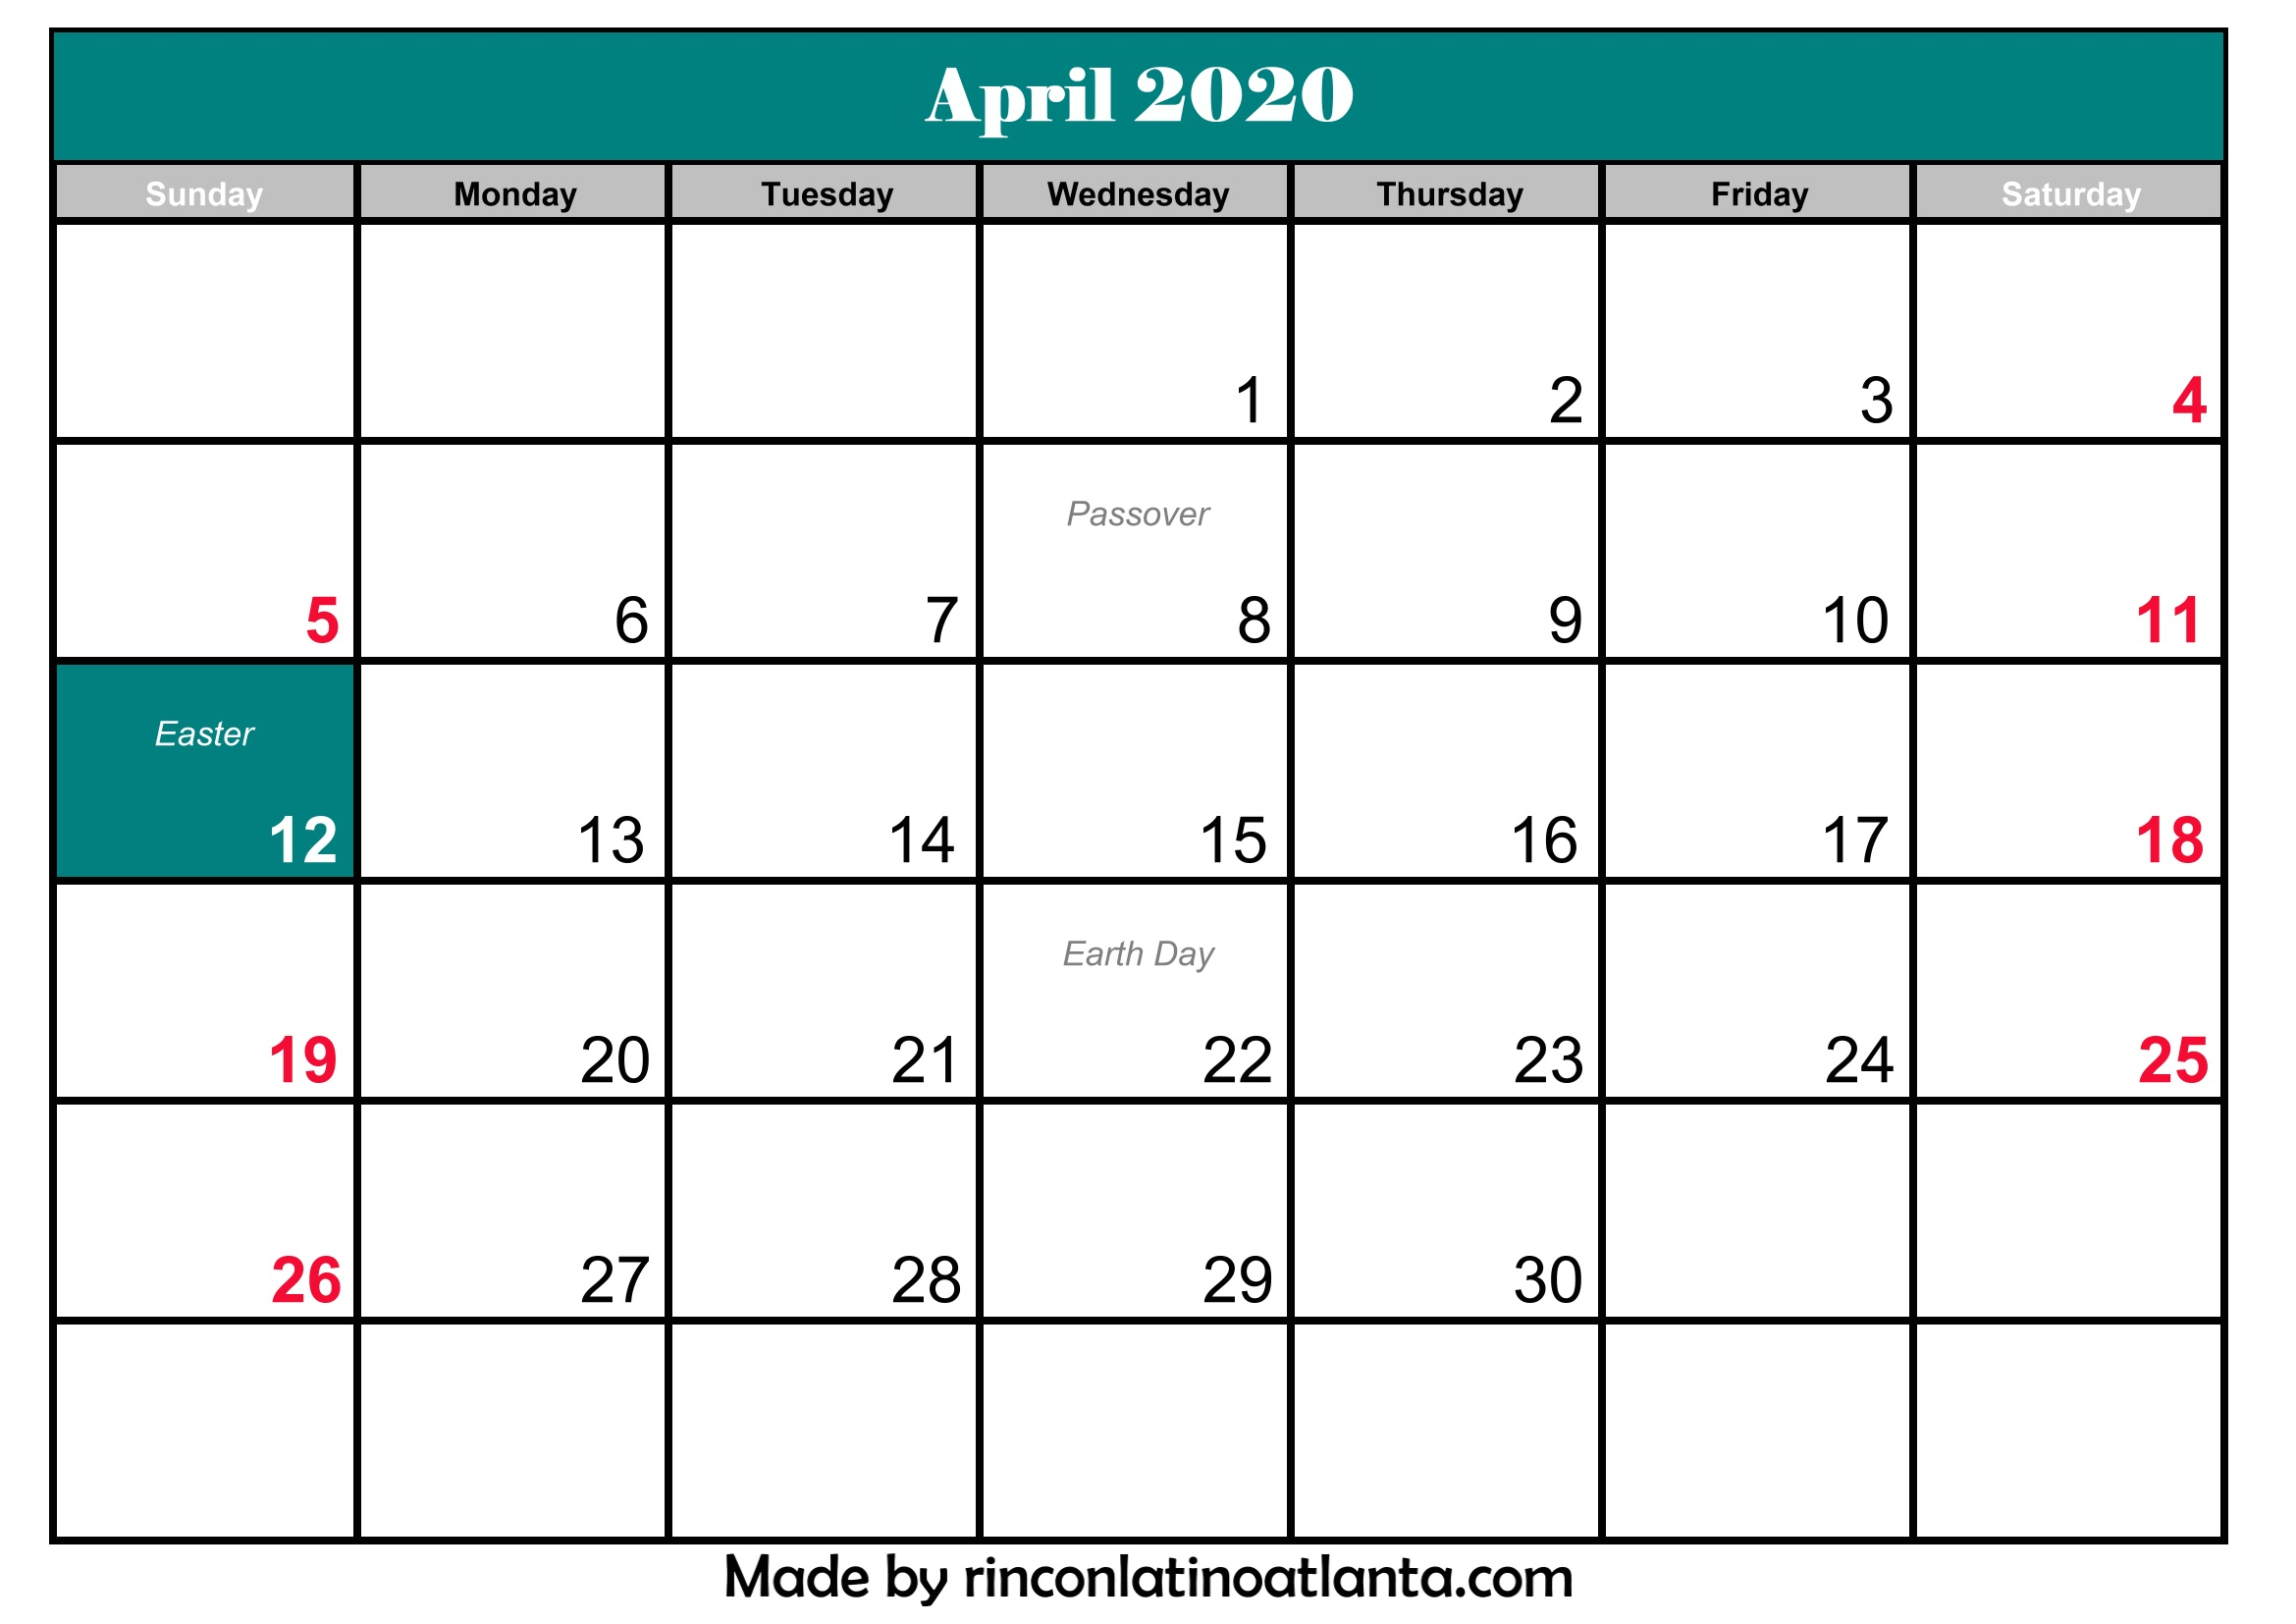 Calendars Michel Zbinden 2020 | Calendar For Planning with regard to Michel Zbinden Calendar